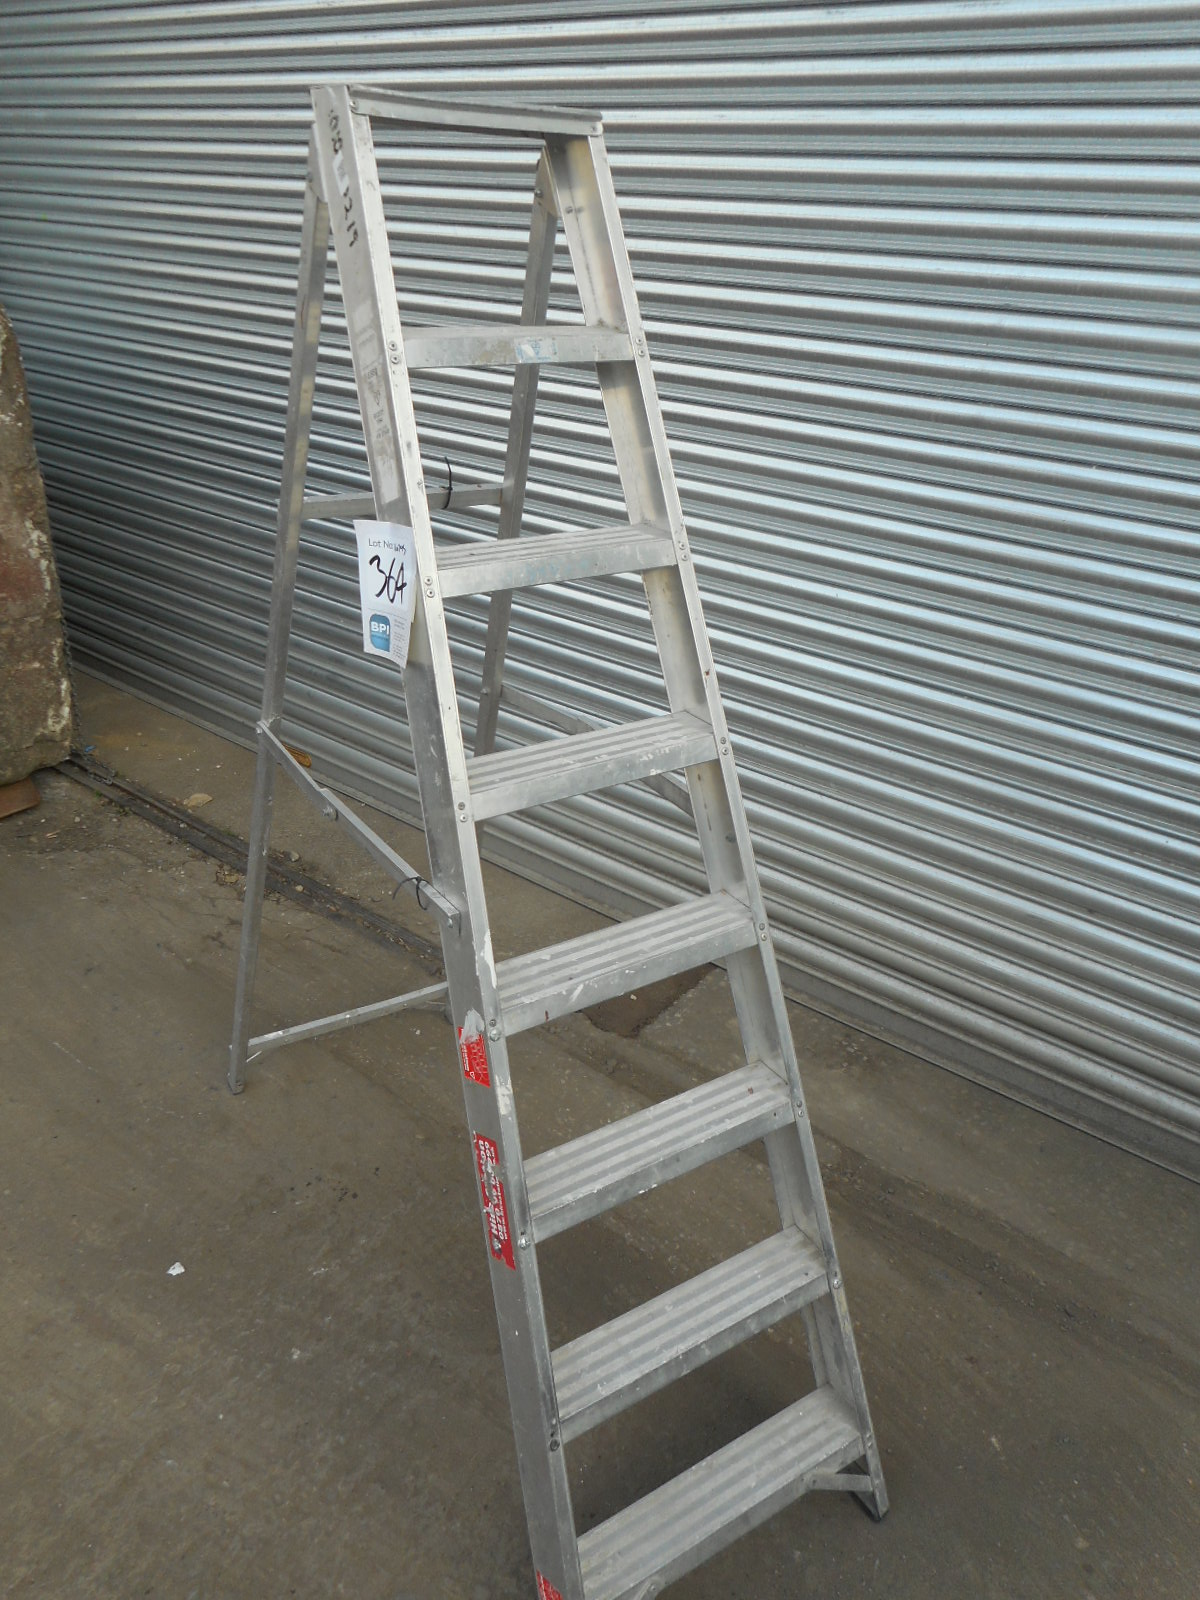 UNKNOWN UNKNOWN {035140} ALLOY SWING-BACK STEP LADDER - 8 ...